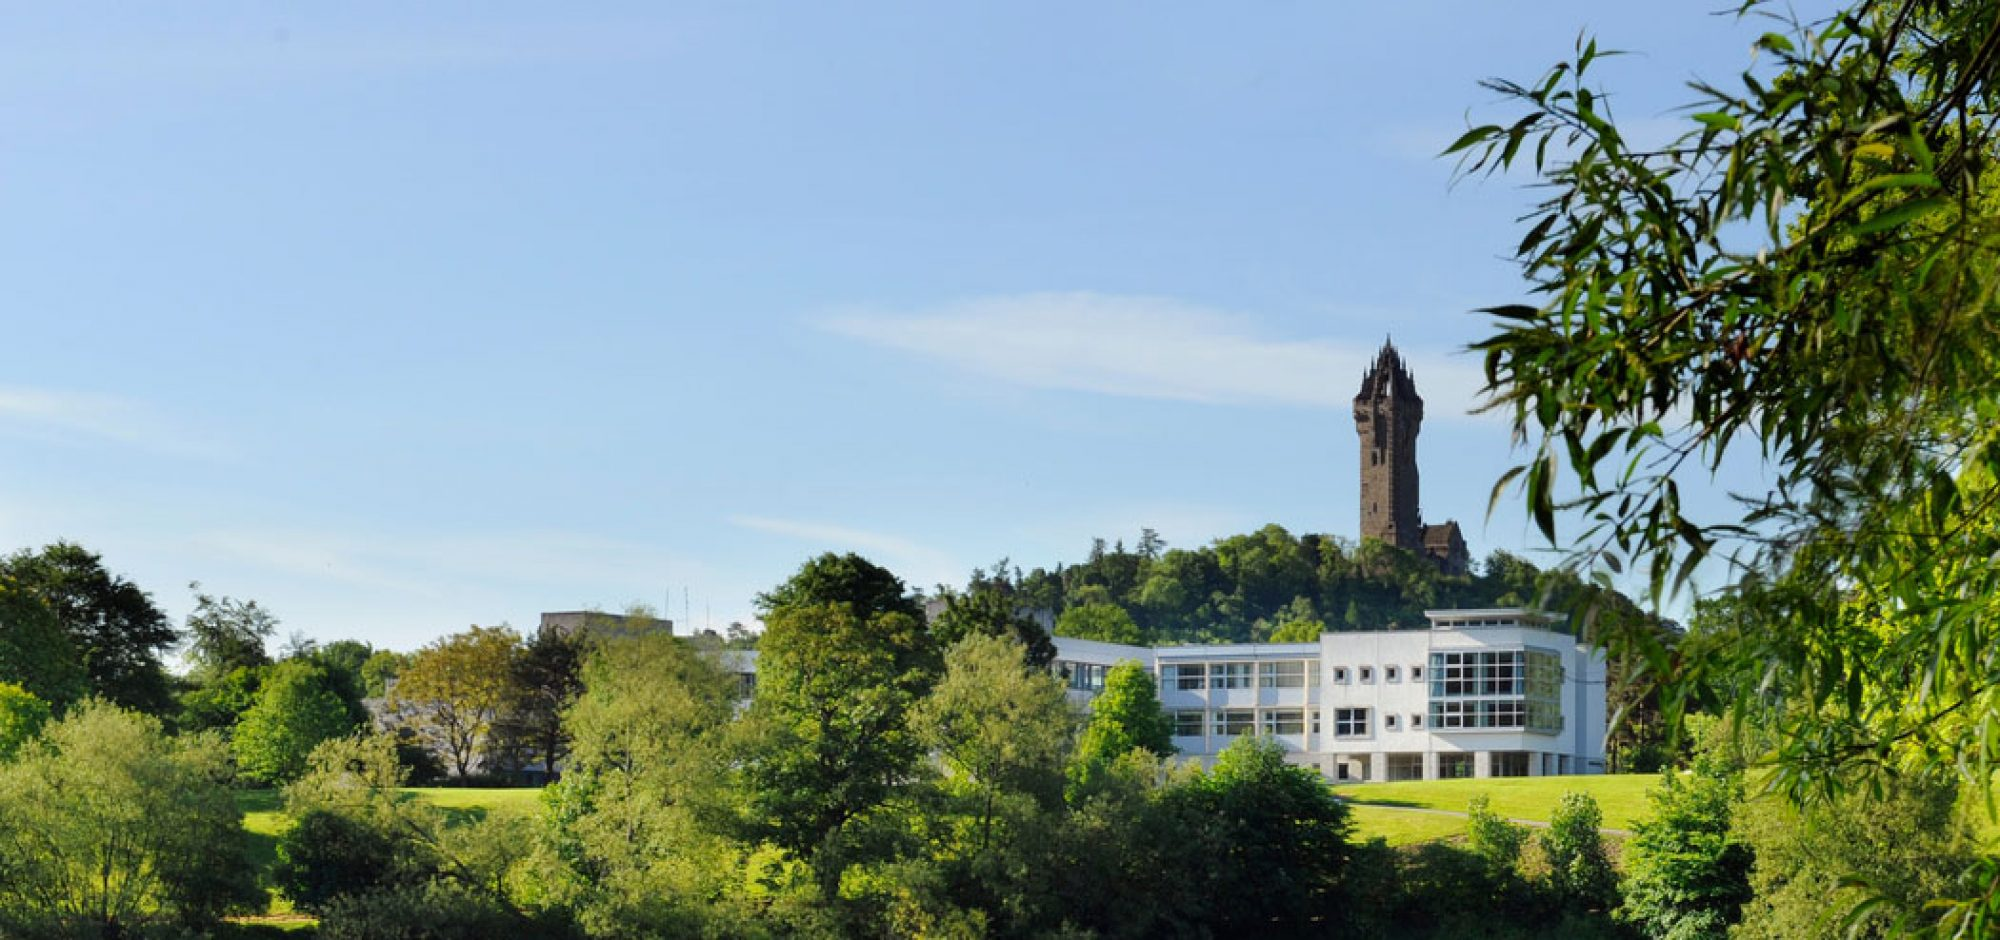 Philosophy Research at Stirling